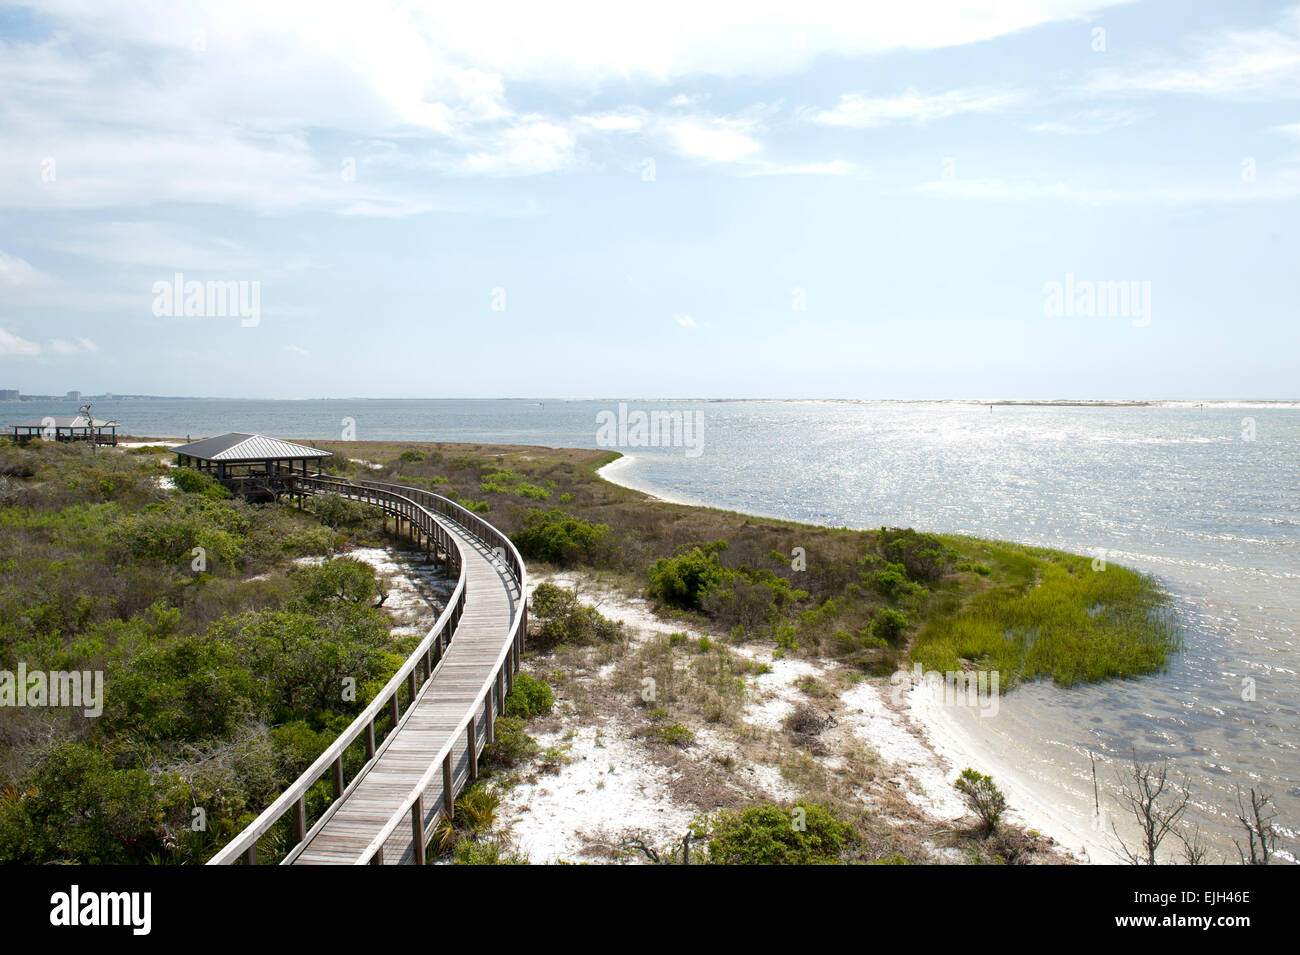 A view of the bay along Big Lagoon State Park in Pensacola Florida Stock Photo